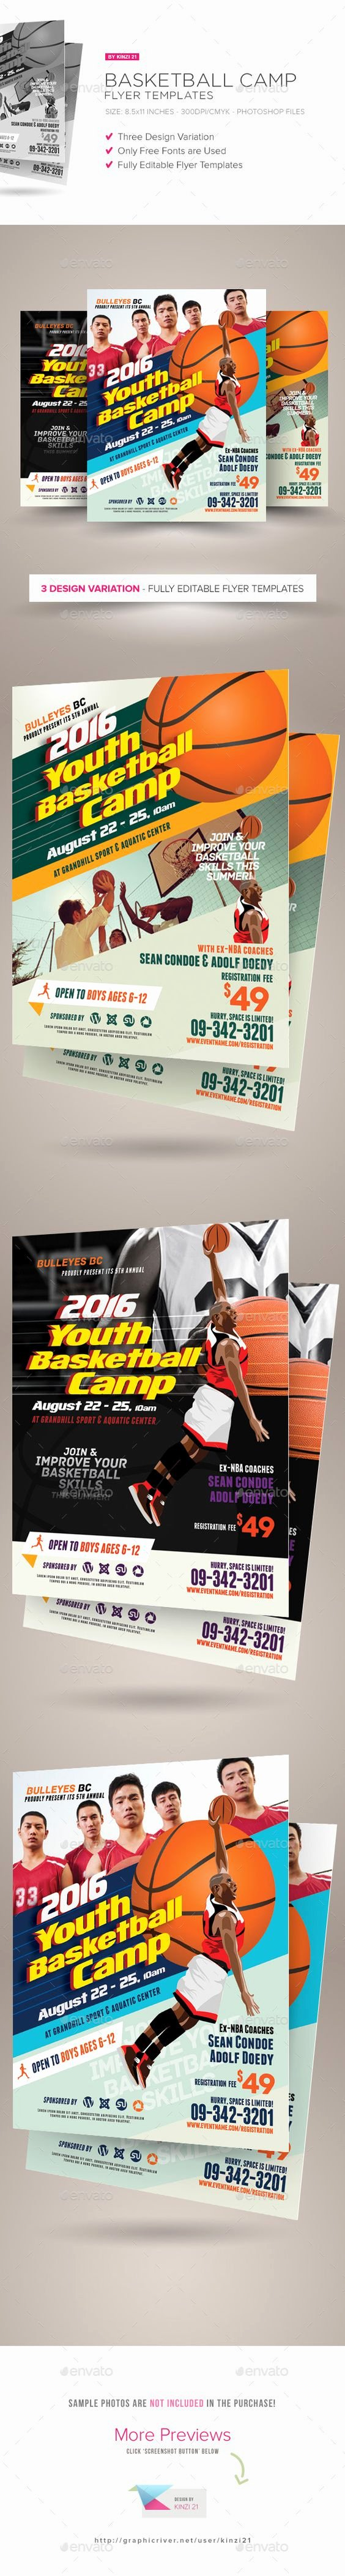 Basketball Camps Flyers and Basketball On Pinterest